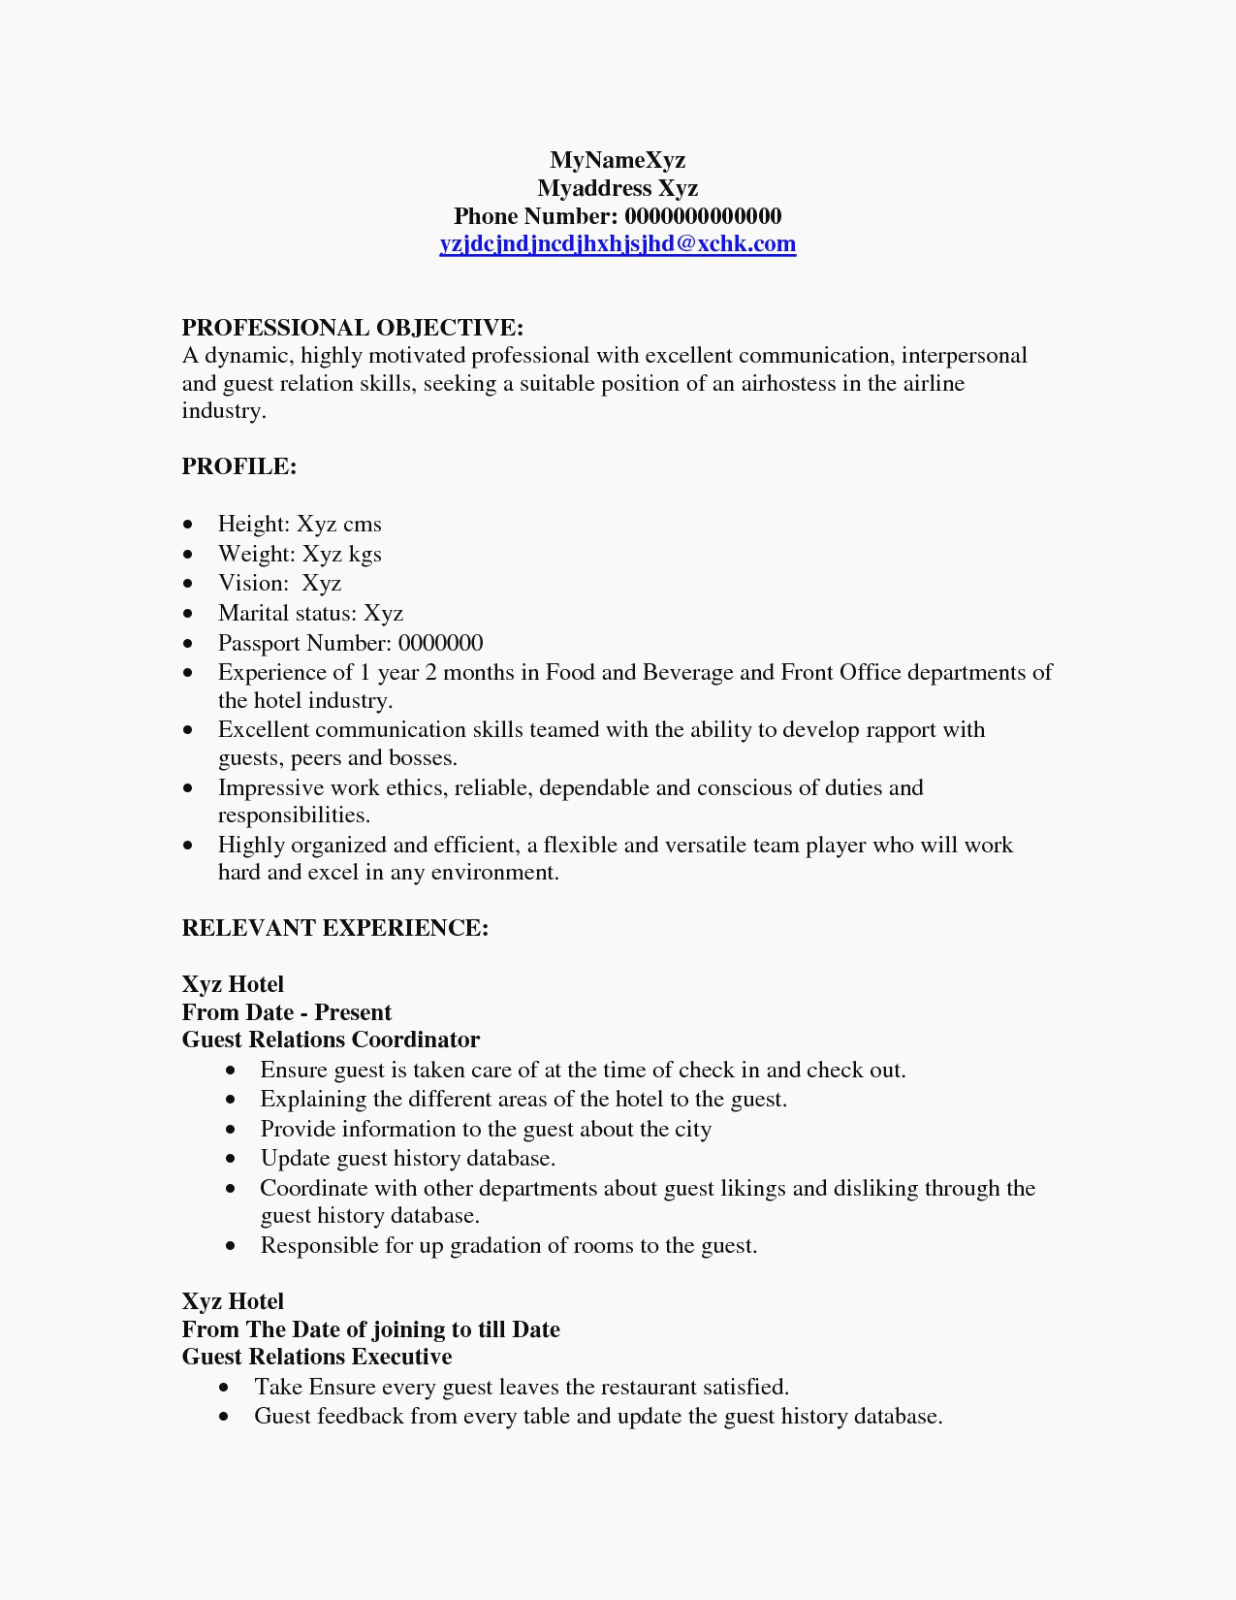 Job Description for Hostess Beautiful the 15 Reasons tourists